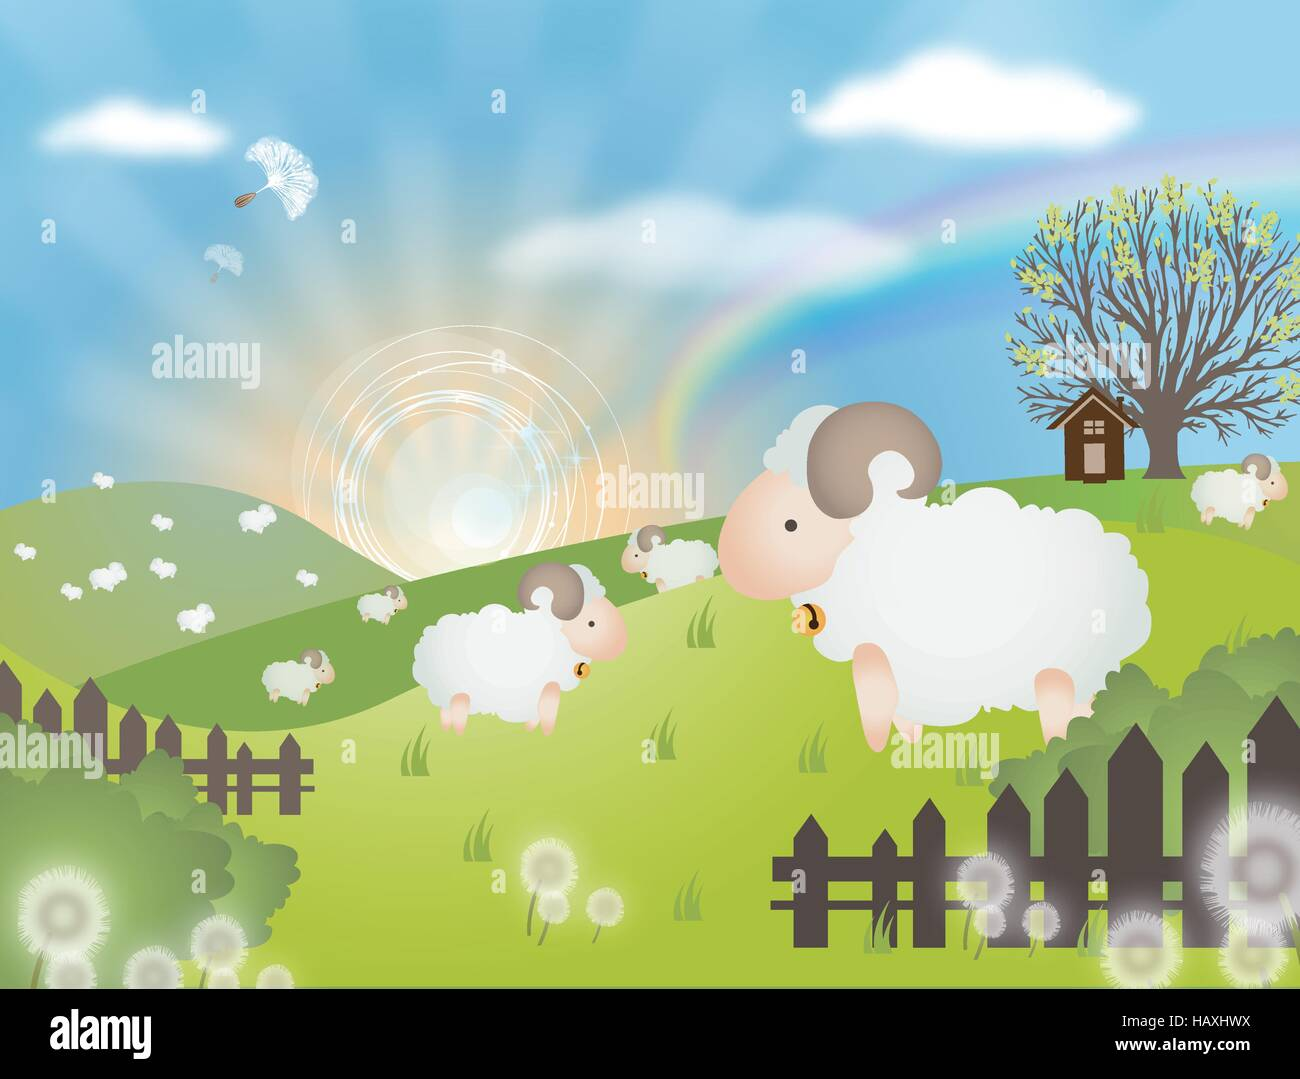 Illustration and Painting Paintings - Stock Vector